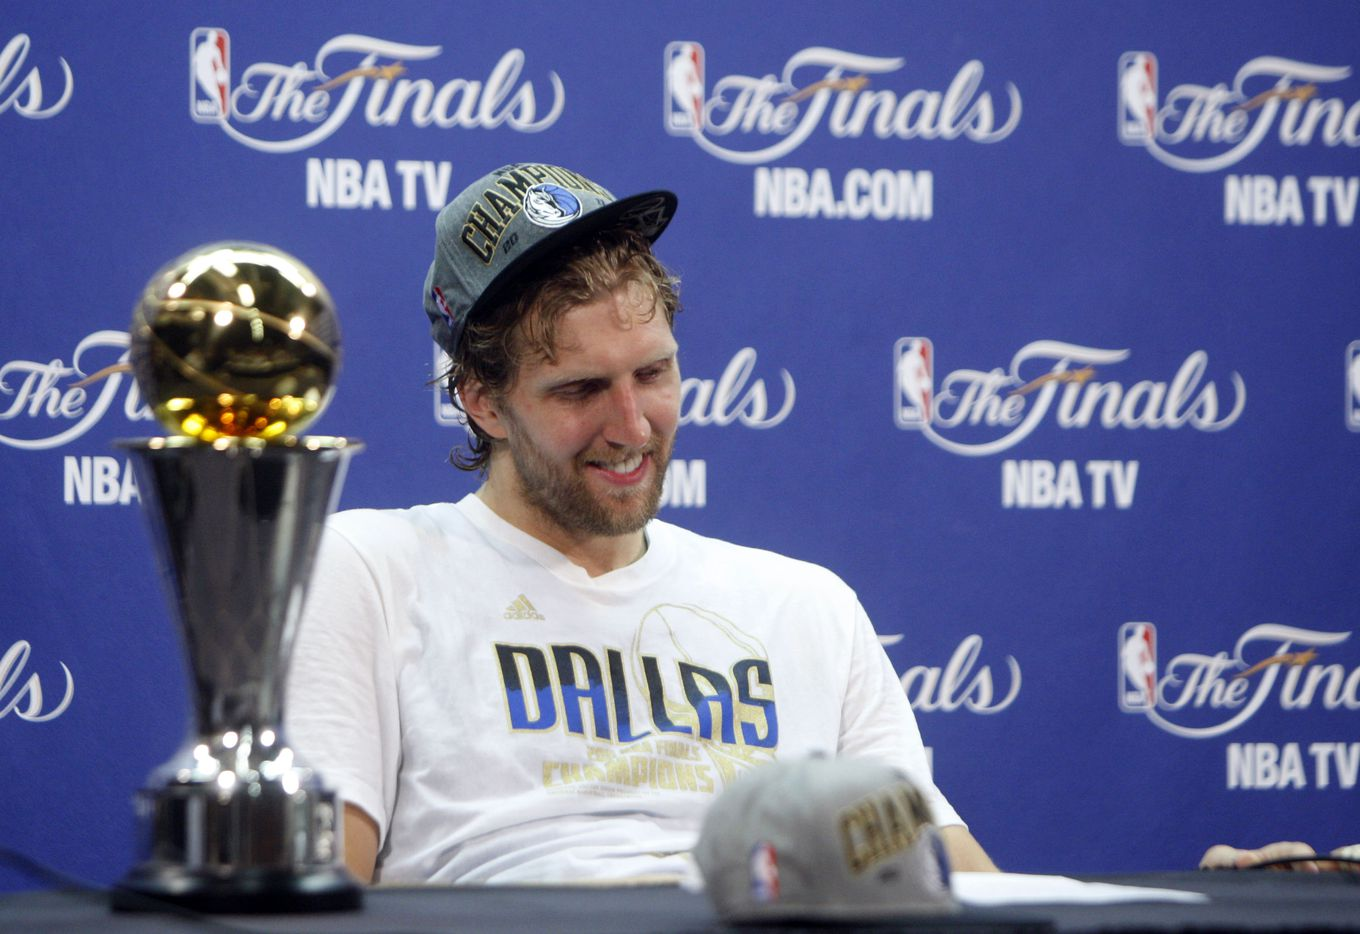 Dallas Mavericks power forward Dirk Nowitzki (41) smiles during an interview after winning in game six of the NBA Finals between the Miami Heat and the Dallas Mavericks at the American Airlines Arena in Miami, Florida, June 12, 2011. The Mavericks won 105-95 to take the title. (Vernon Bryant/The Dallas Morning News) Next to him is the Bill Russell NBA Finals MVP trophy